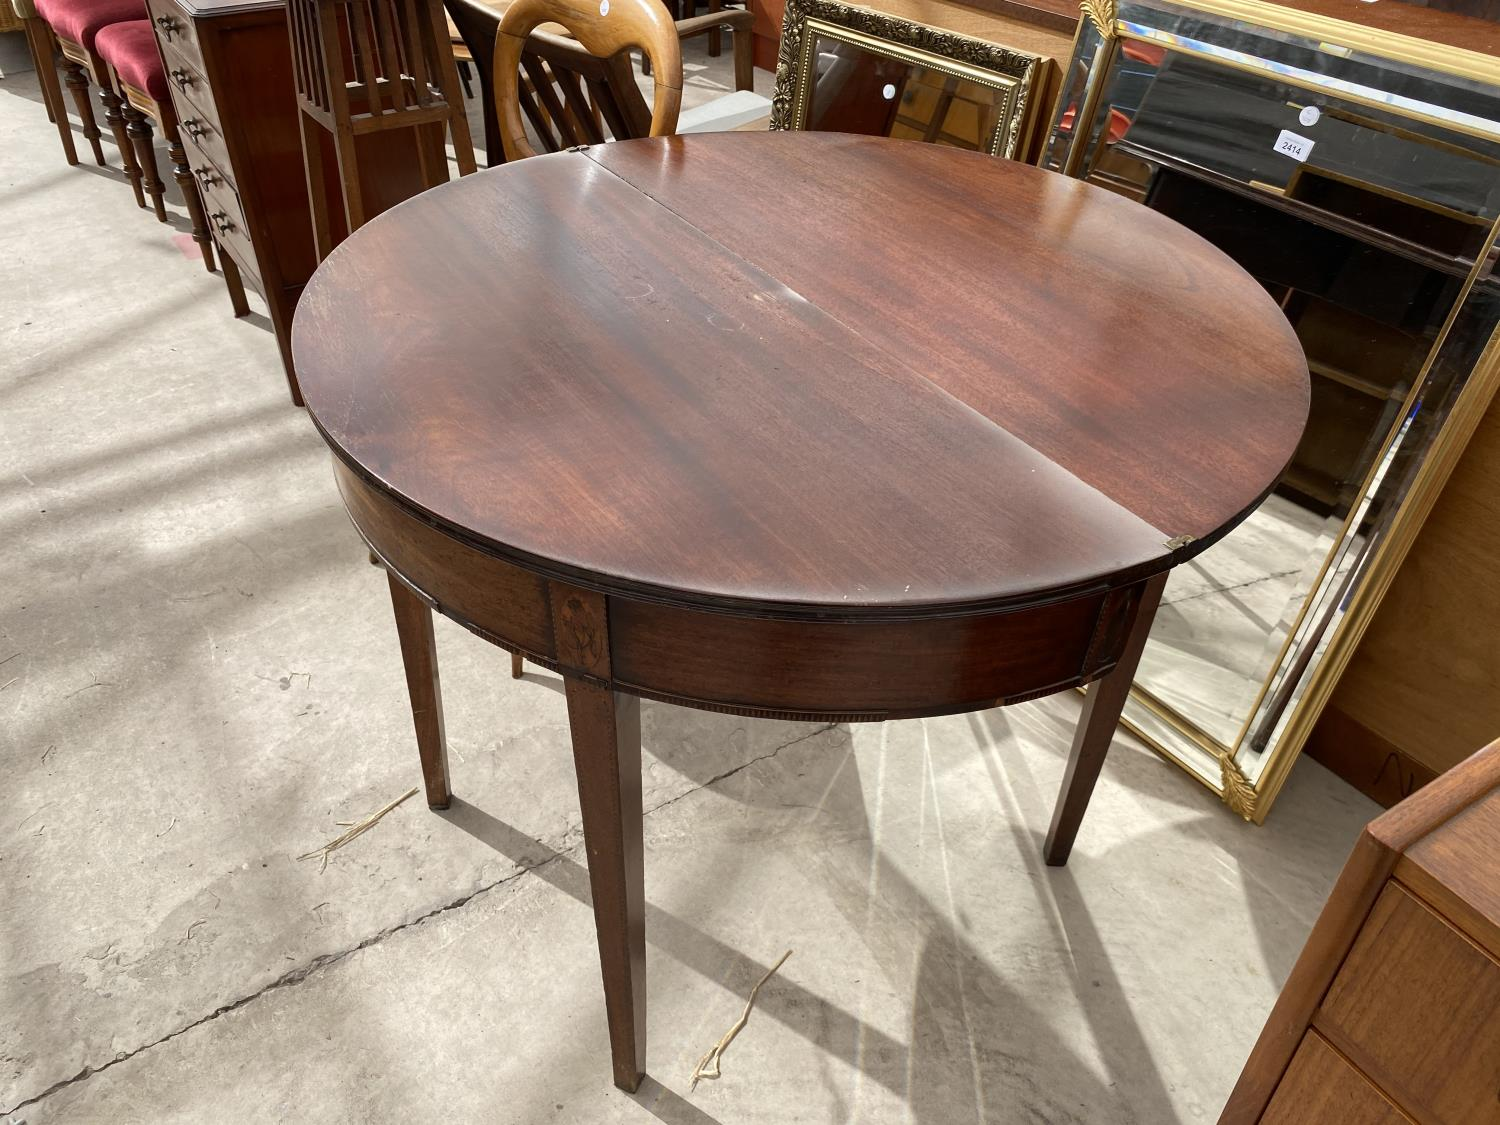 """A GEORGE III MAHOGANY AND INLAID FOLD-OVER TEA TABLE, 35"""" DIAMETER OPENED - Image 5 of 5"""